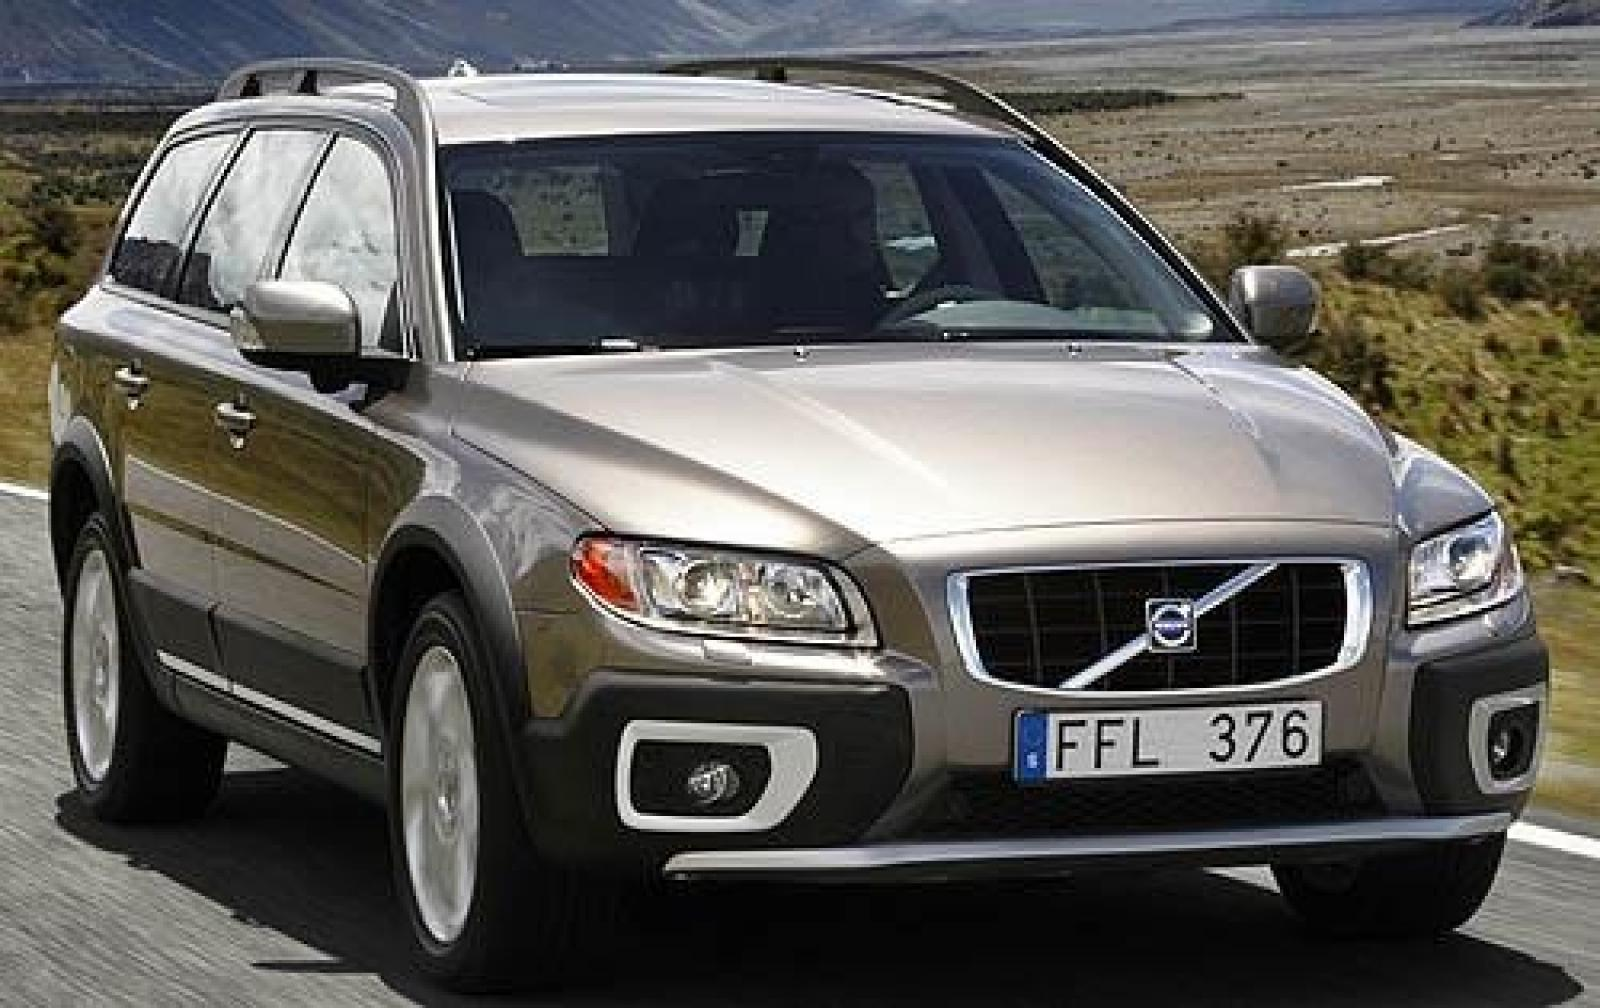 2010 volvo xc70 information and photos zombiedrive rh zombdrive com 2009 Volvo XC60 2009 volvo xc70 repair manual